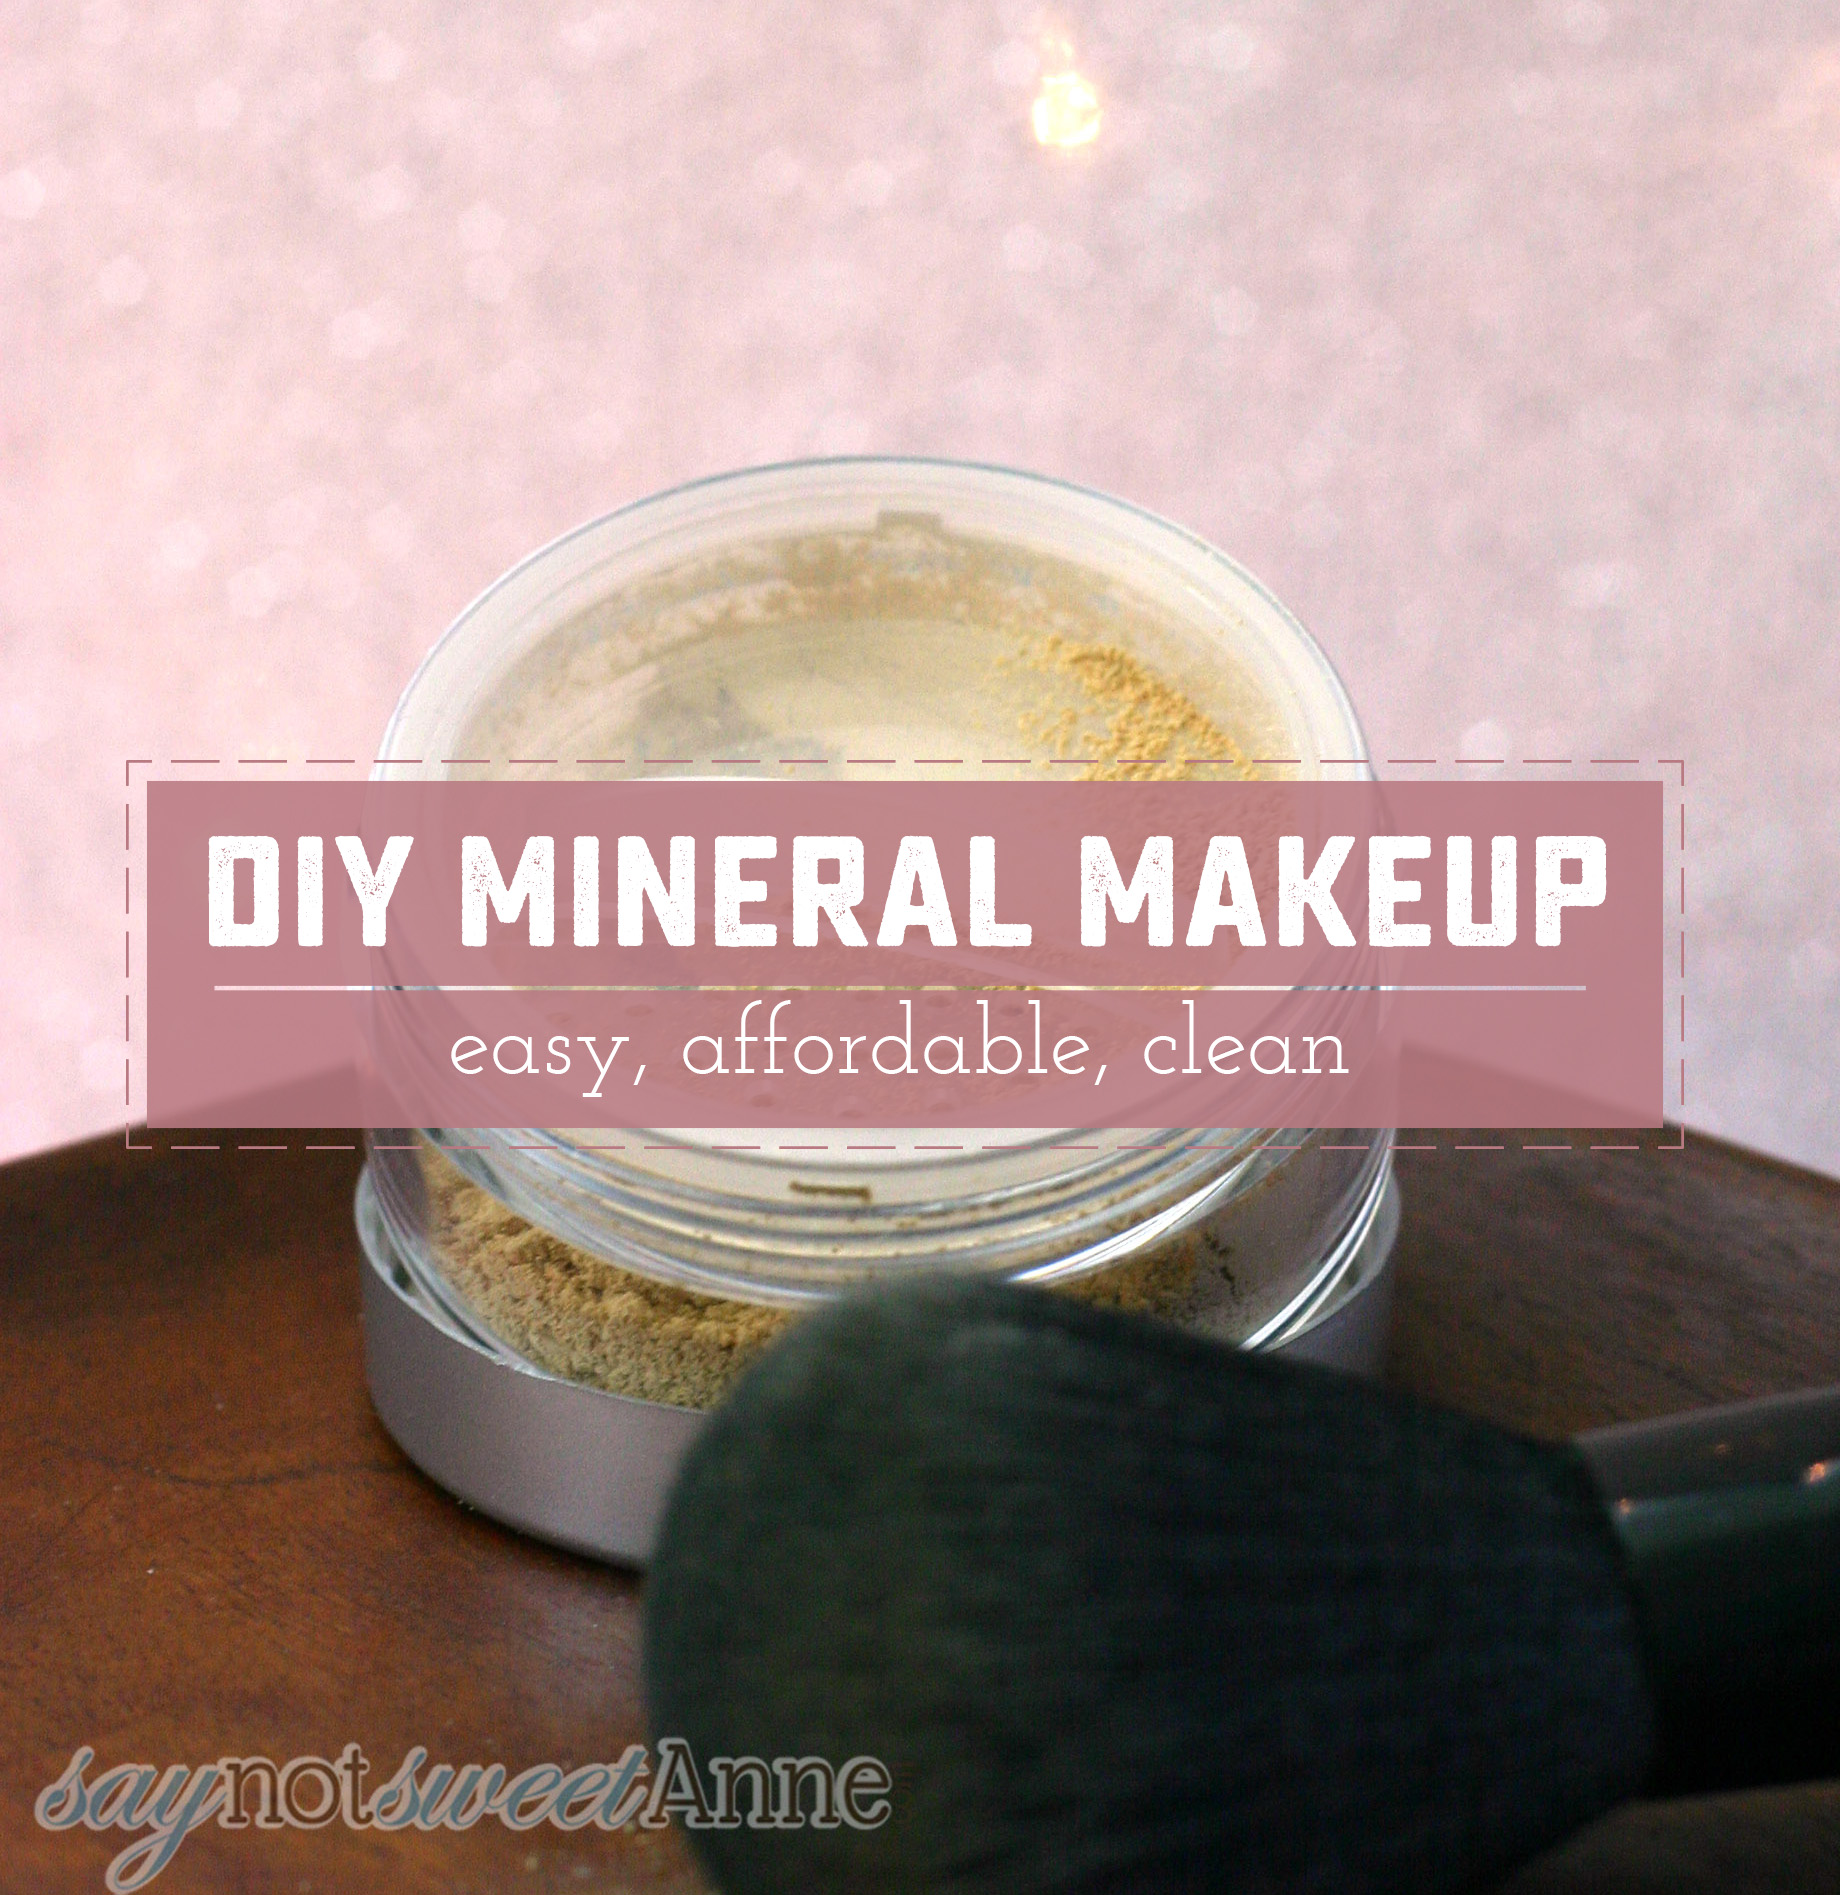 How To Make Beautiful Diy Mineral Makeup Sweet Anne Designs